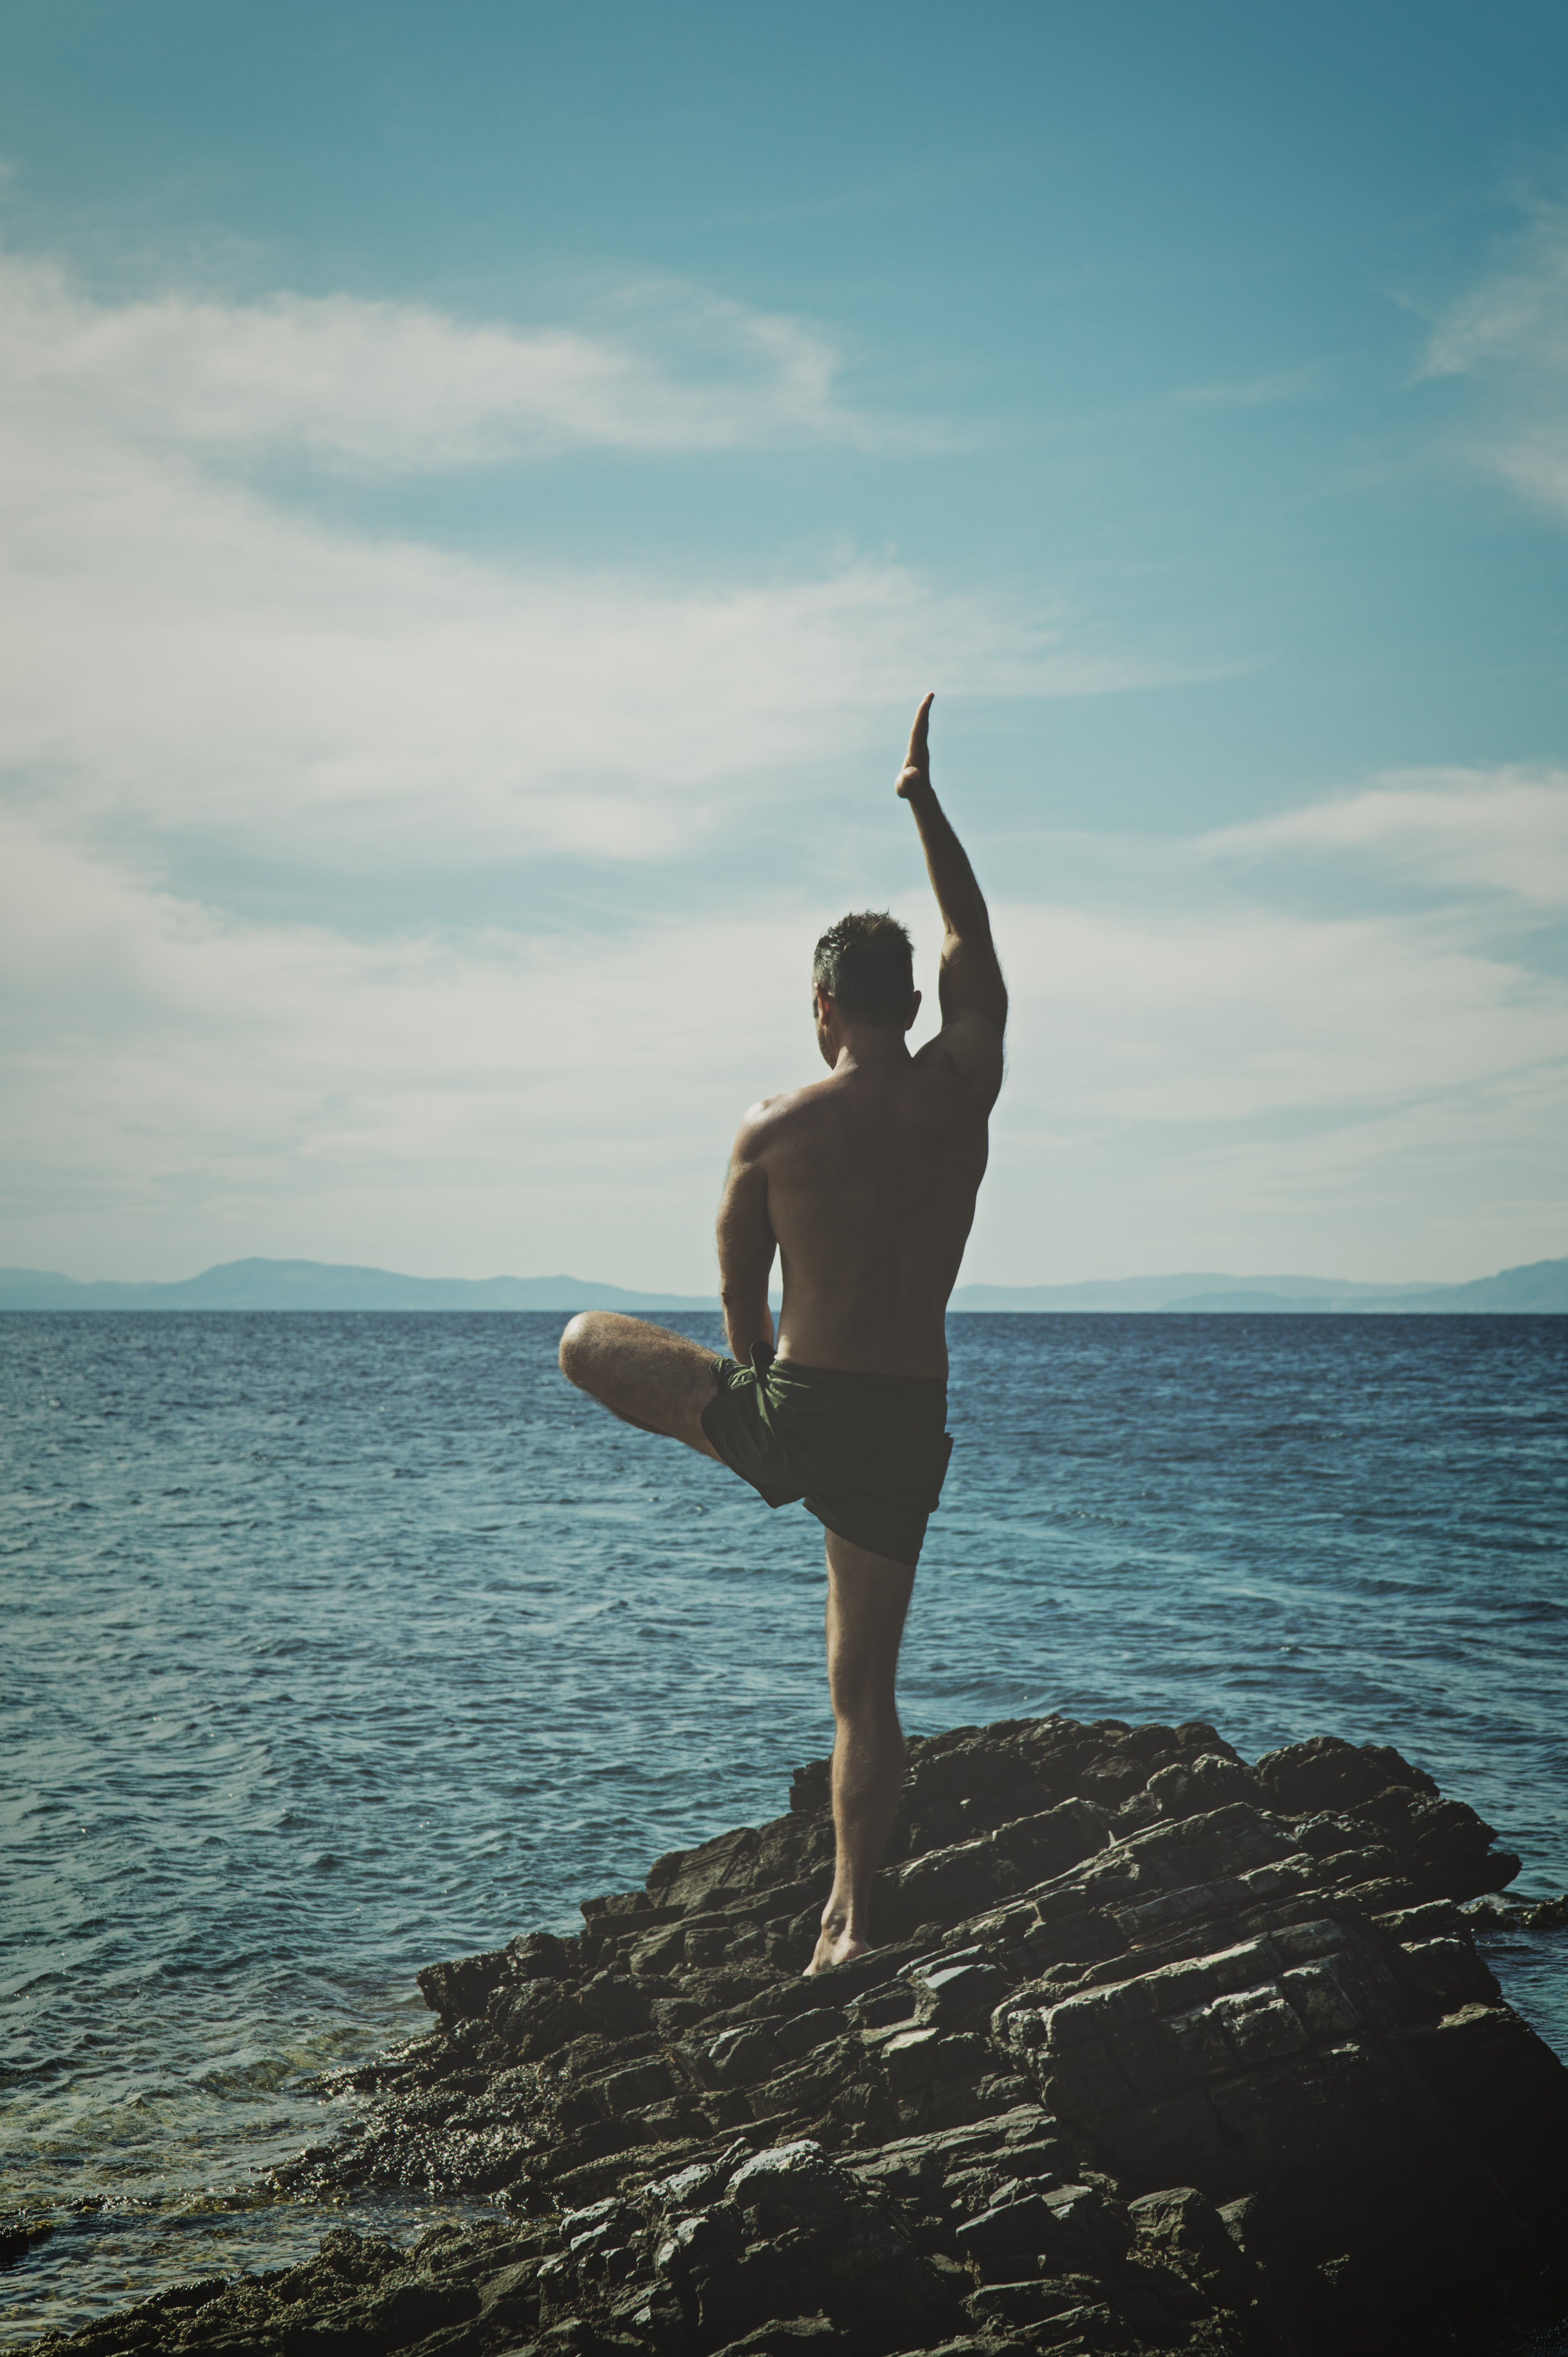 Topless Man Standing on Rock Formation Using Right Leg Only